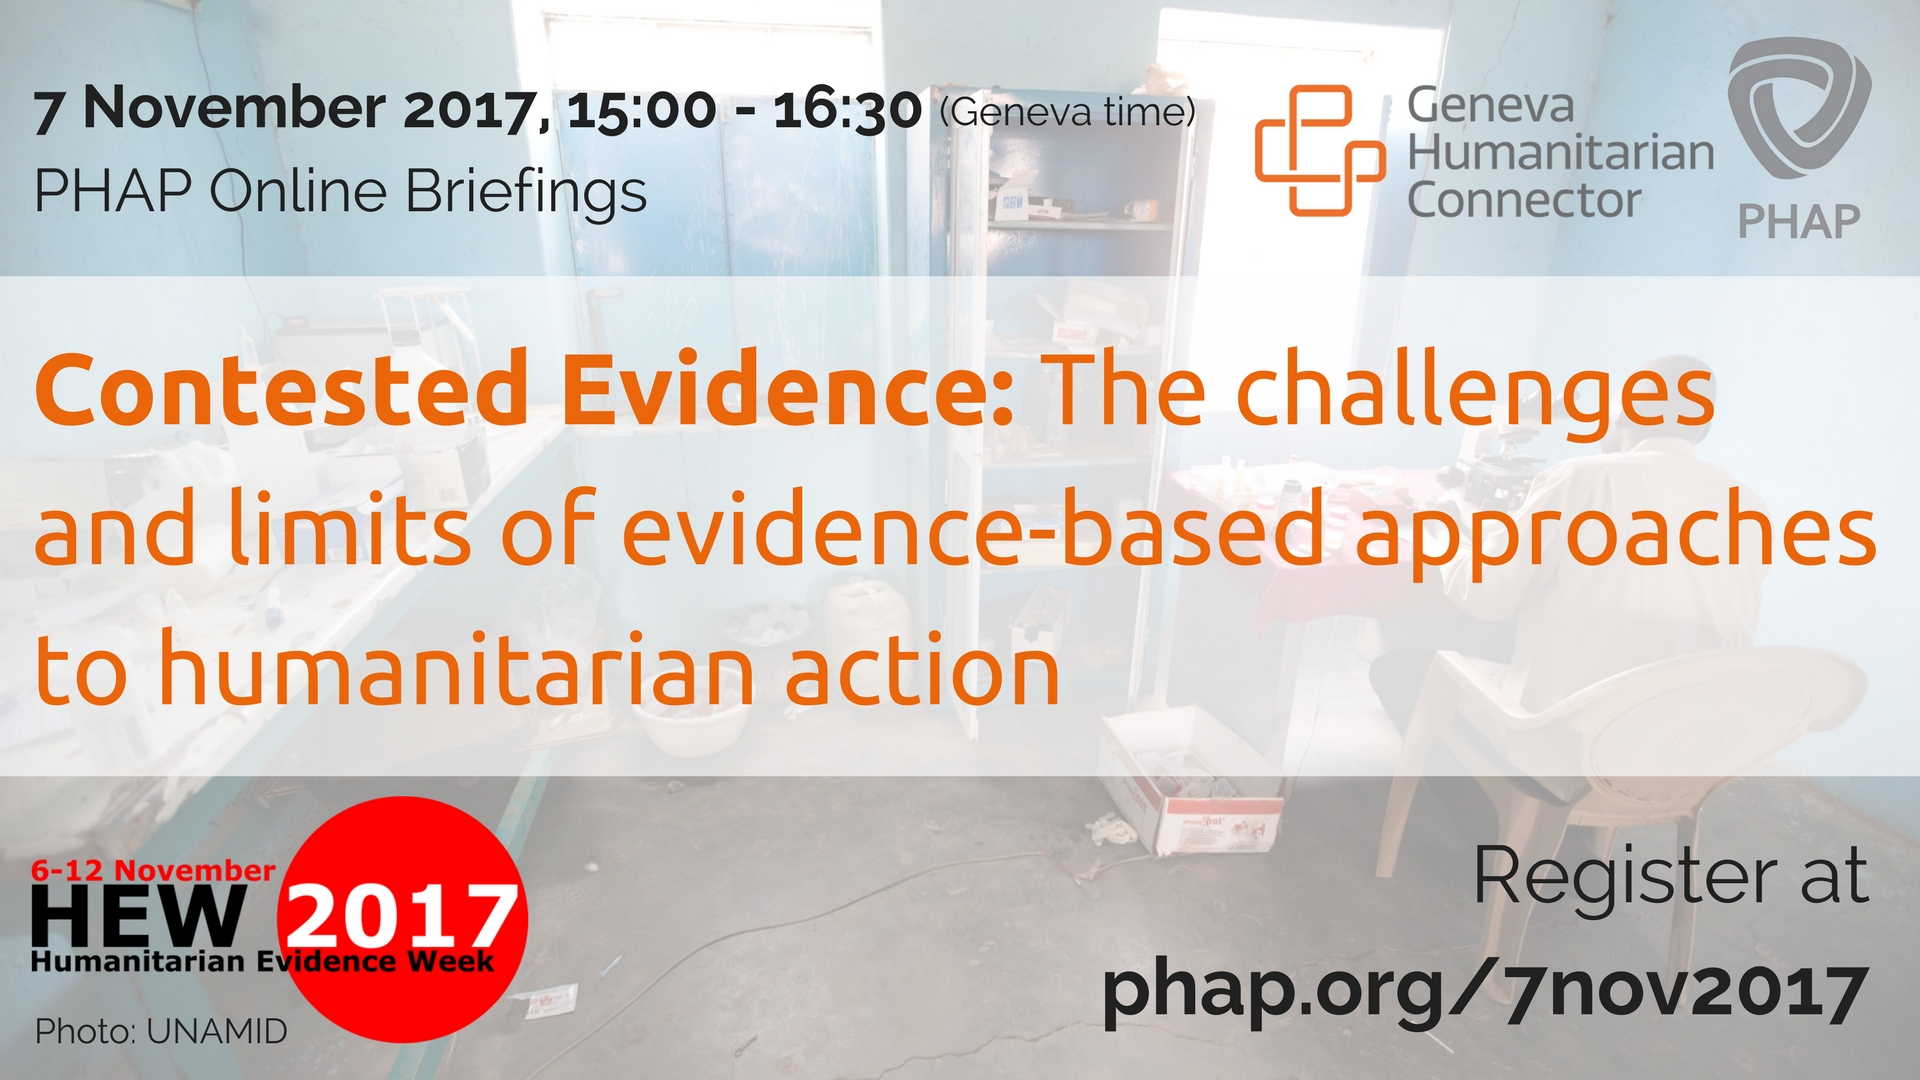 Contested Evidence: The challenges and limits